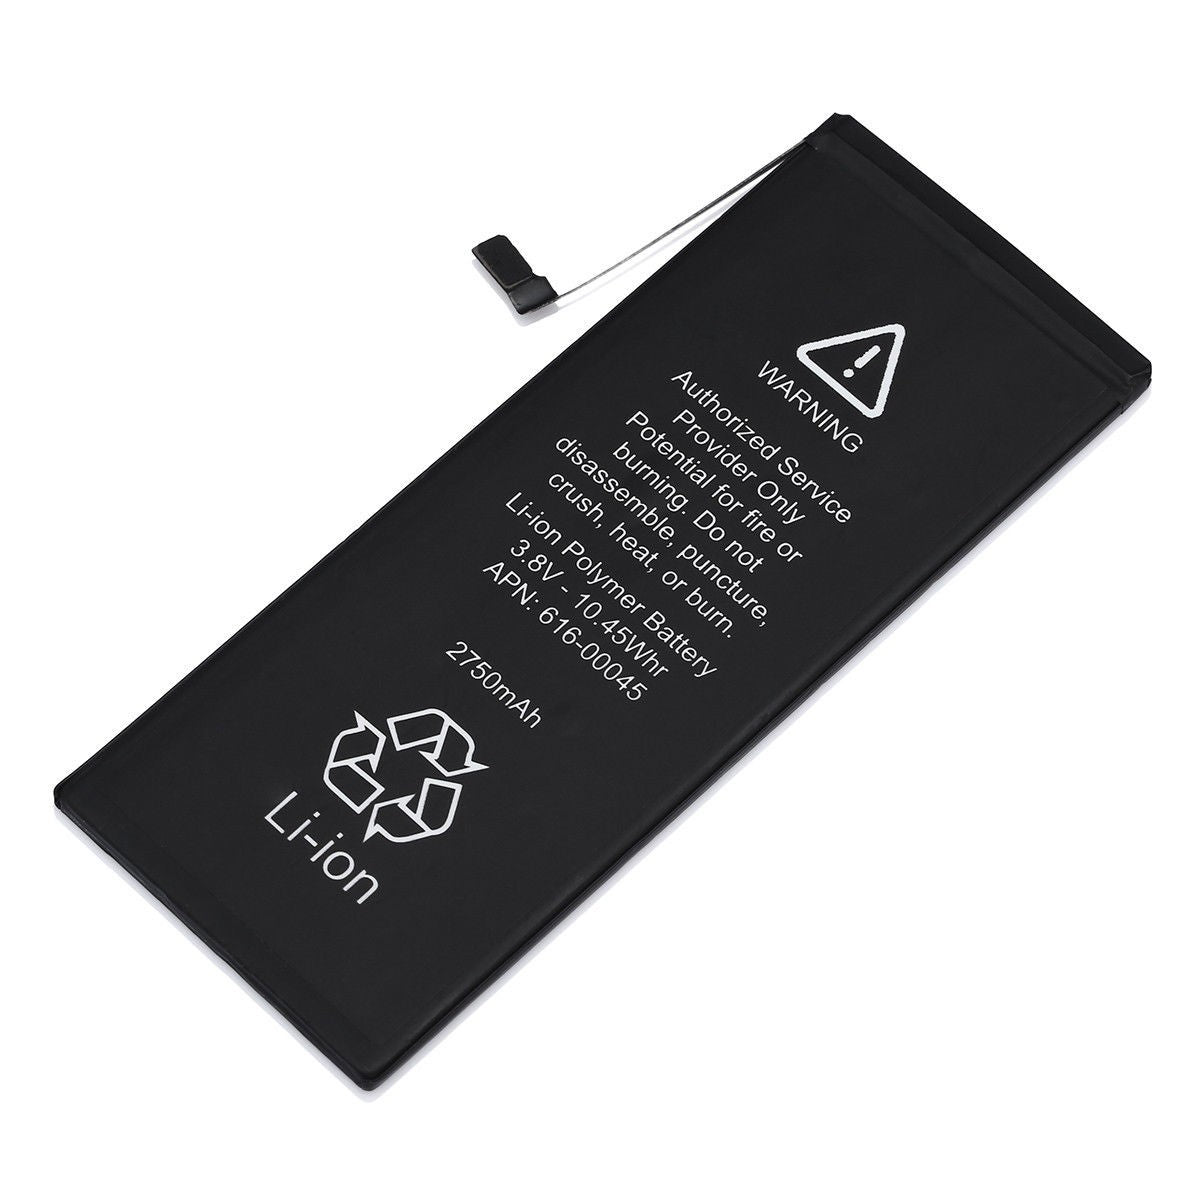 Apple iPhone 6S Plus Battery